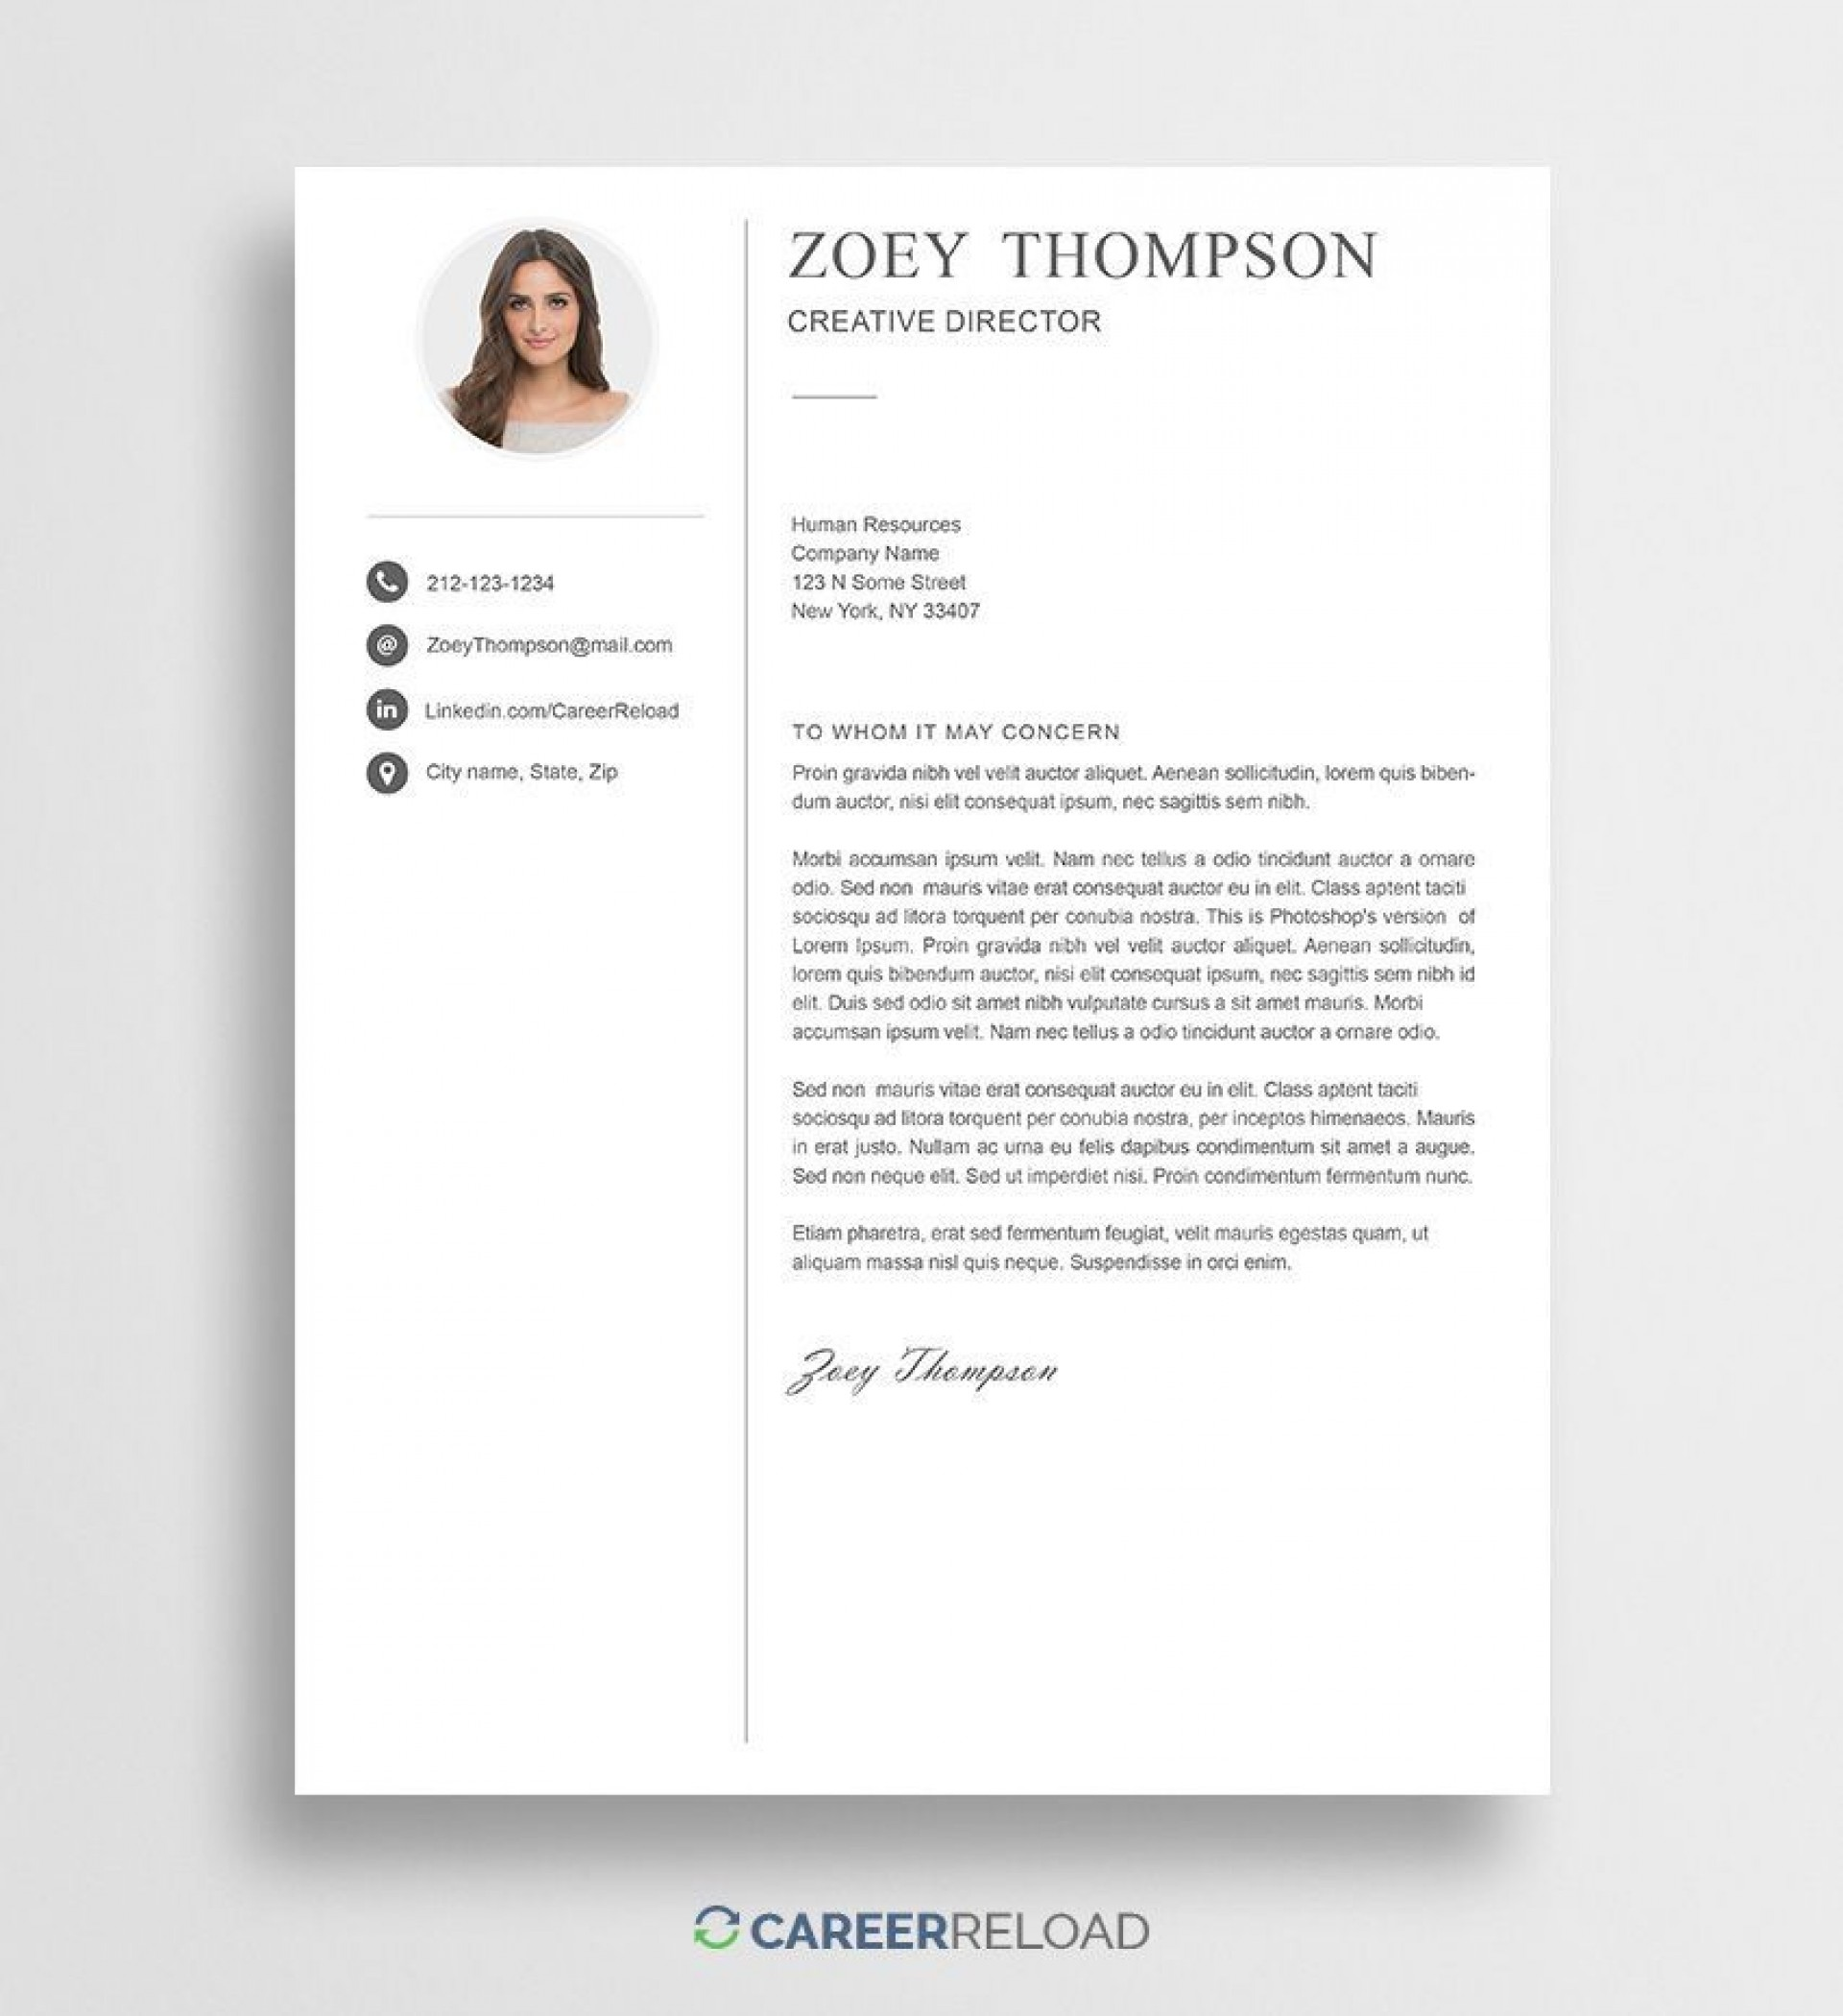 003 Surprising Download Cover Letter Template Free Highest Clarity  Mac Creative Microsoft Word Document1920